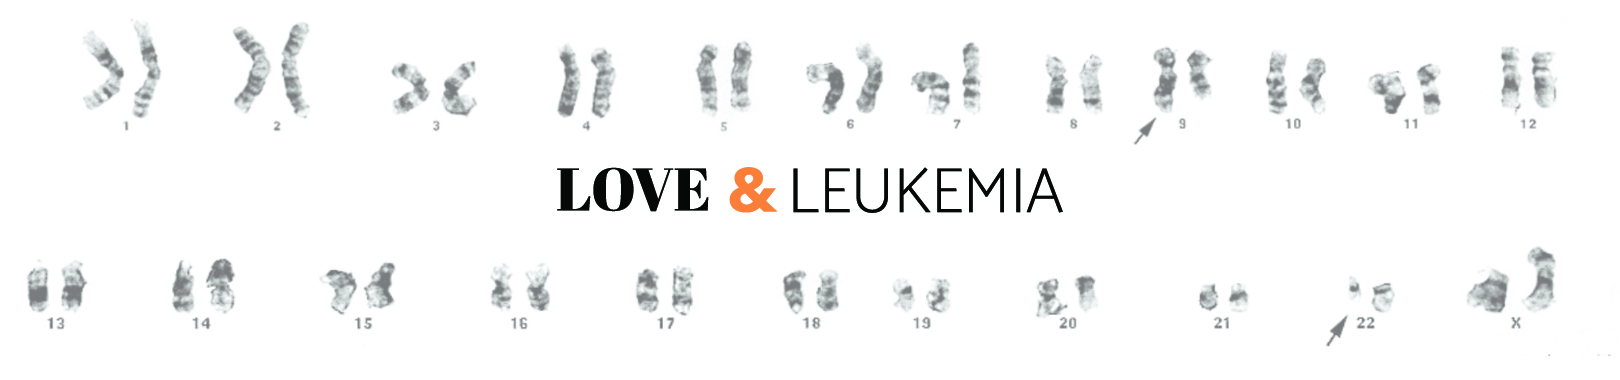 LOVE & LEUKEMIA